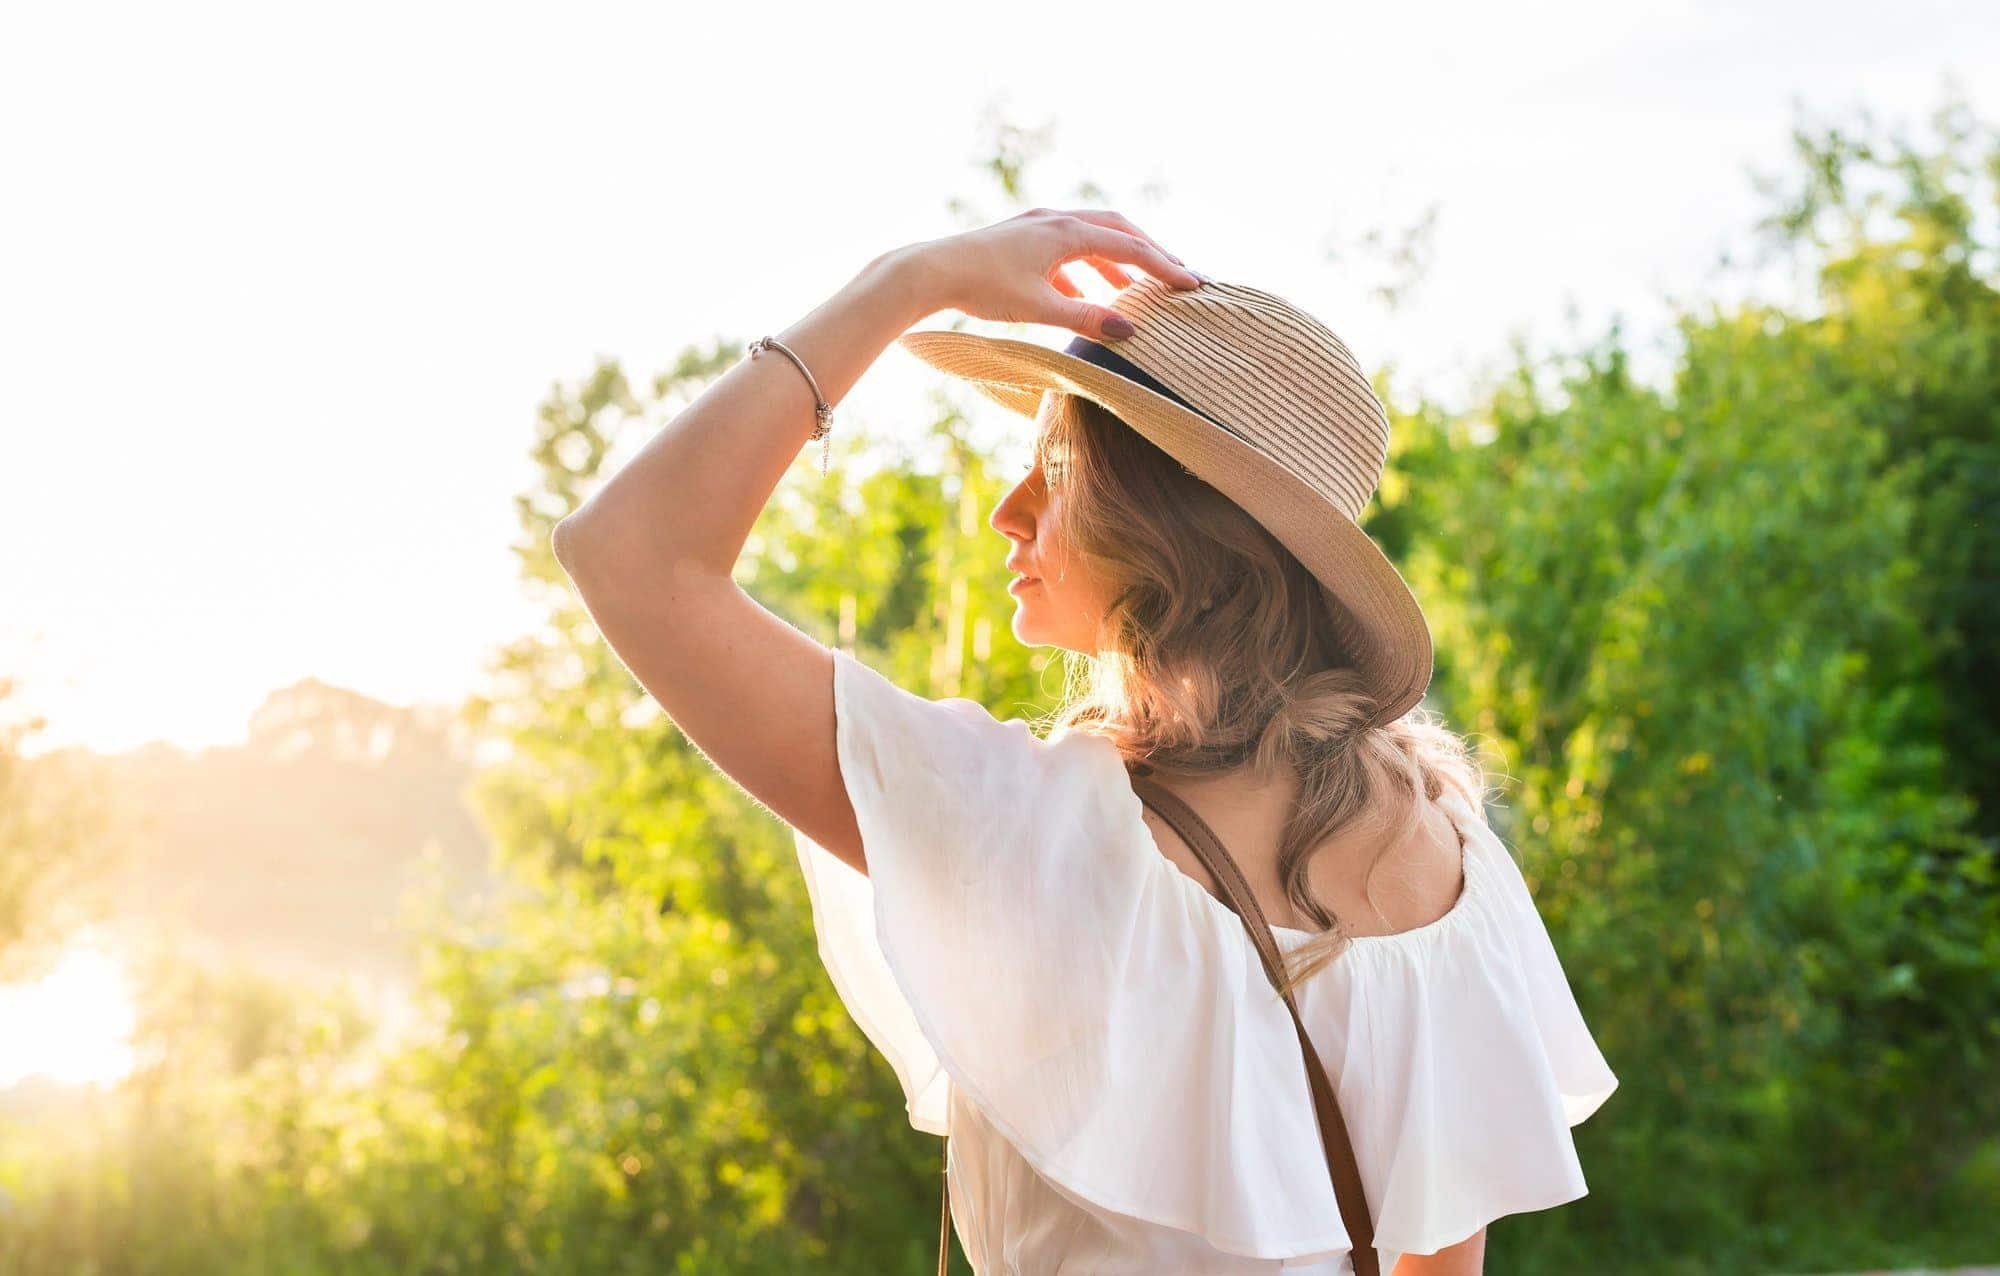 Woman in big straw hat enjoyed with summer sun